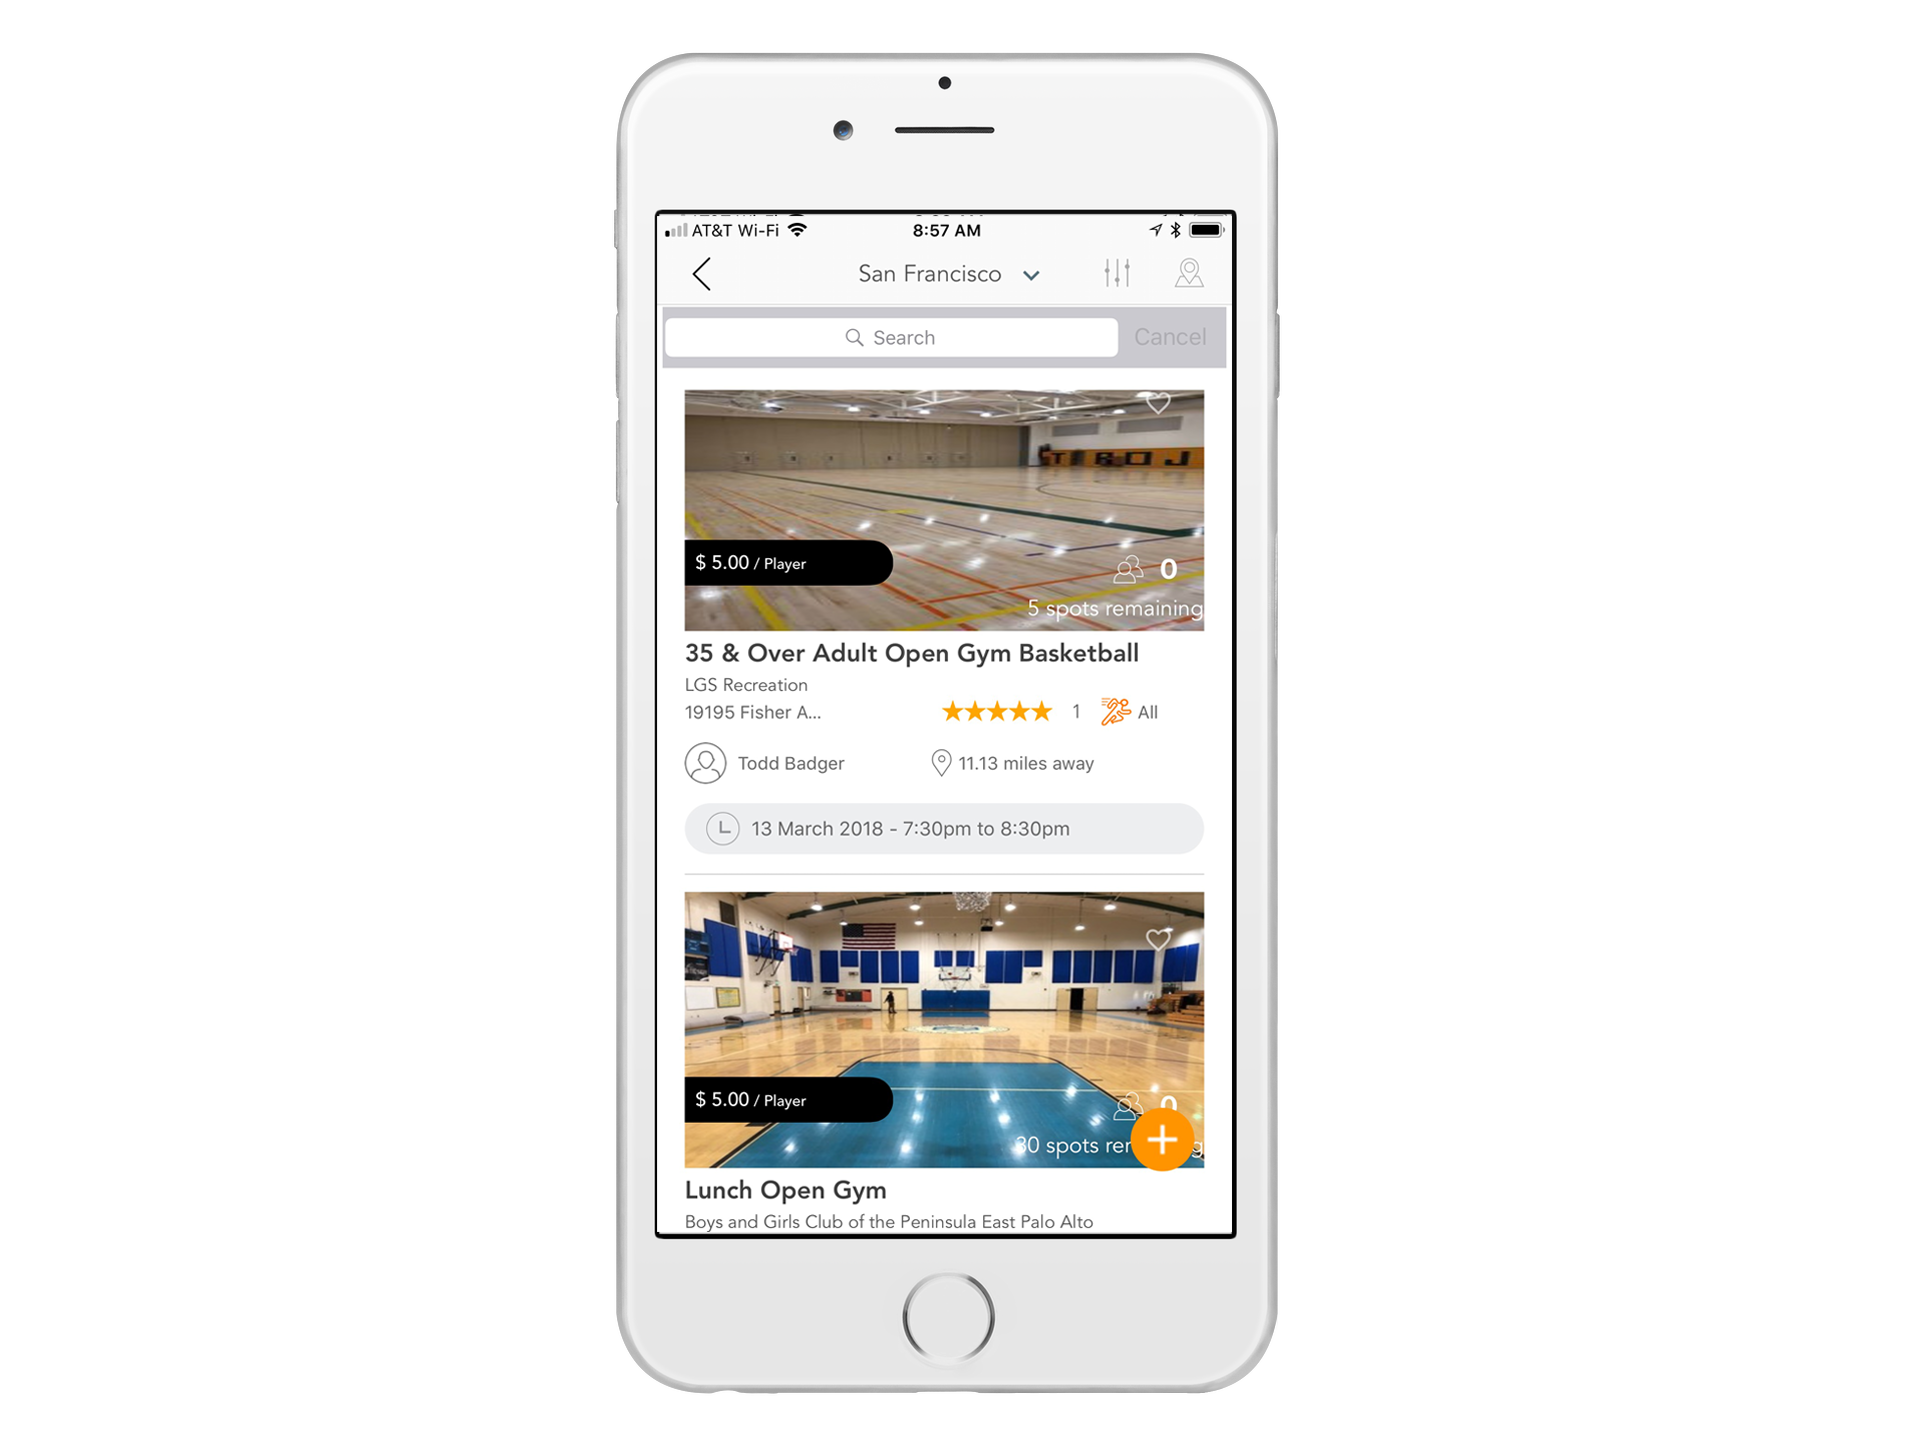 Discover local sports activities - Whether you're looking for open gyms, drop-in programs, or pickup games, you can easily find and join activities going on around you any day of the week or choose from activities near you at a time and price that fits your schedule.